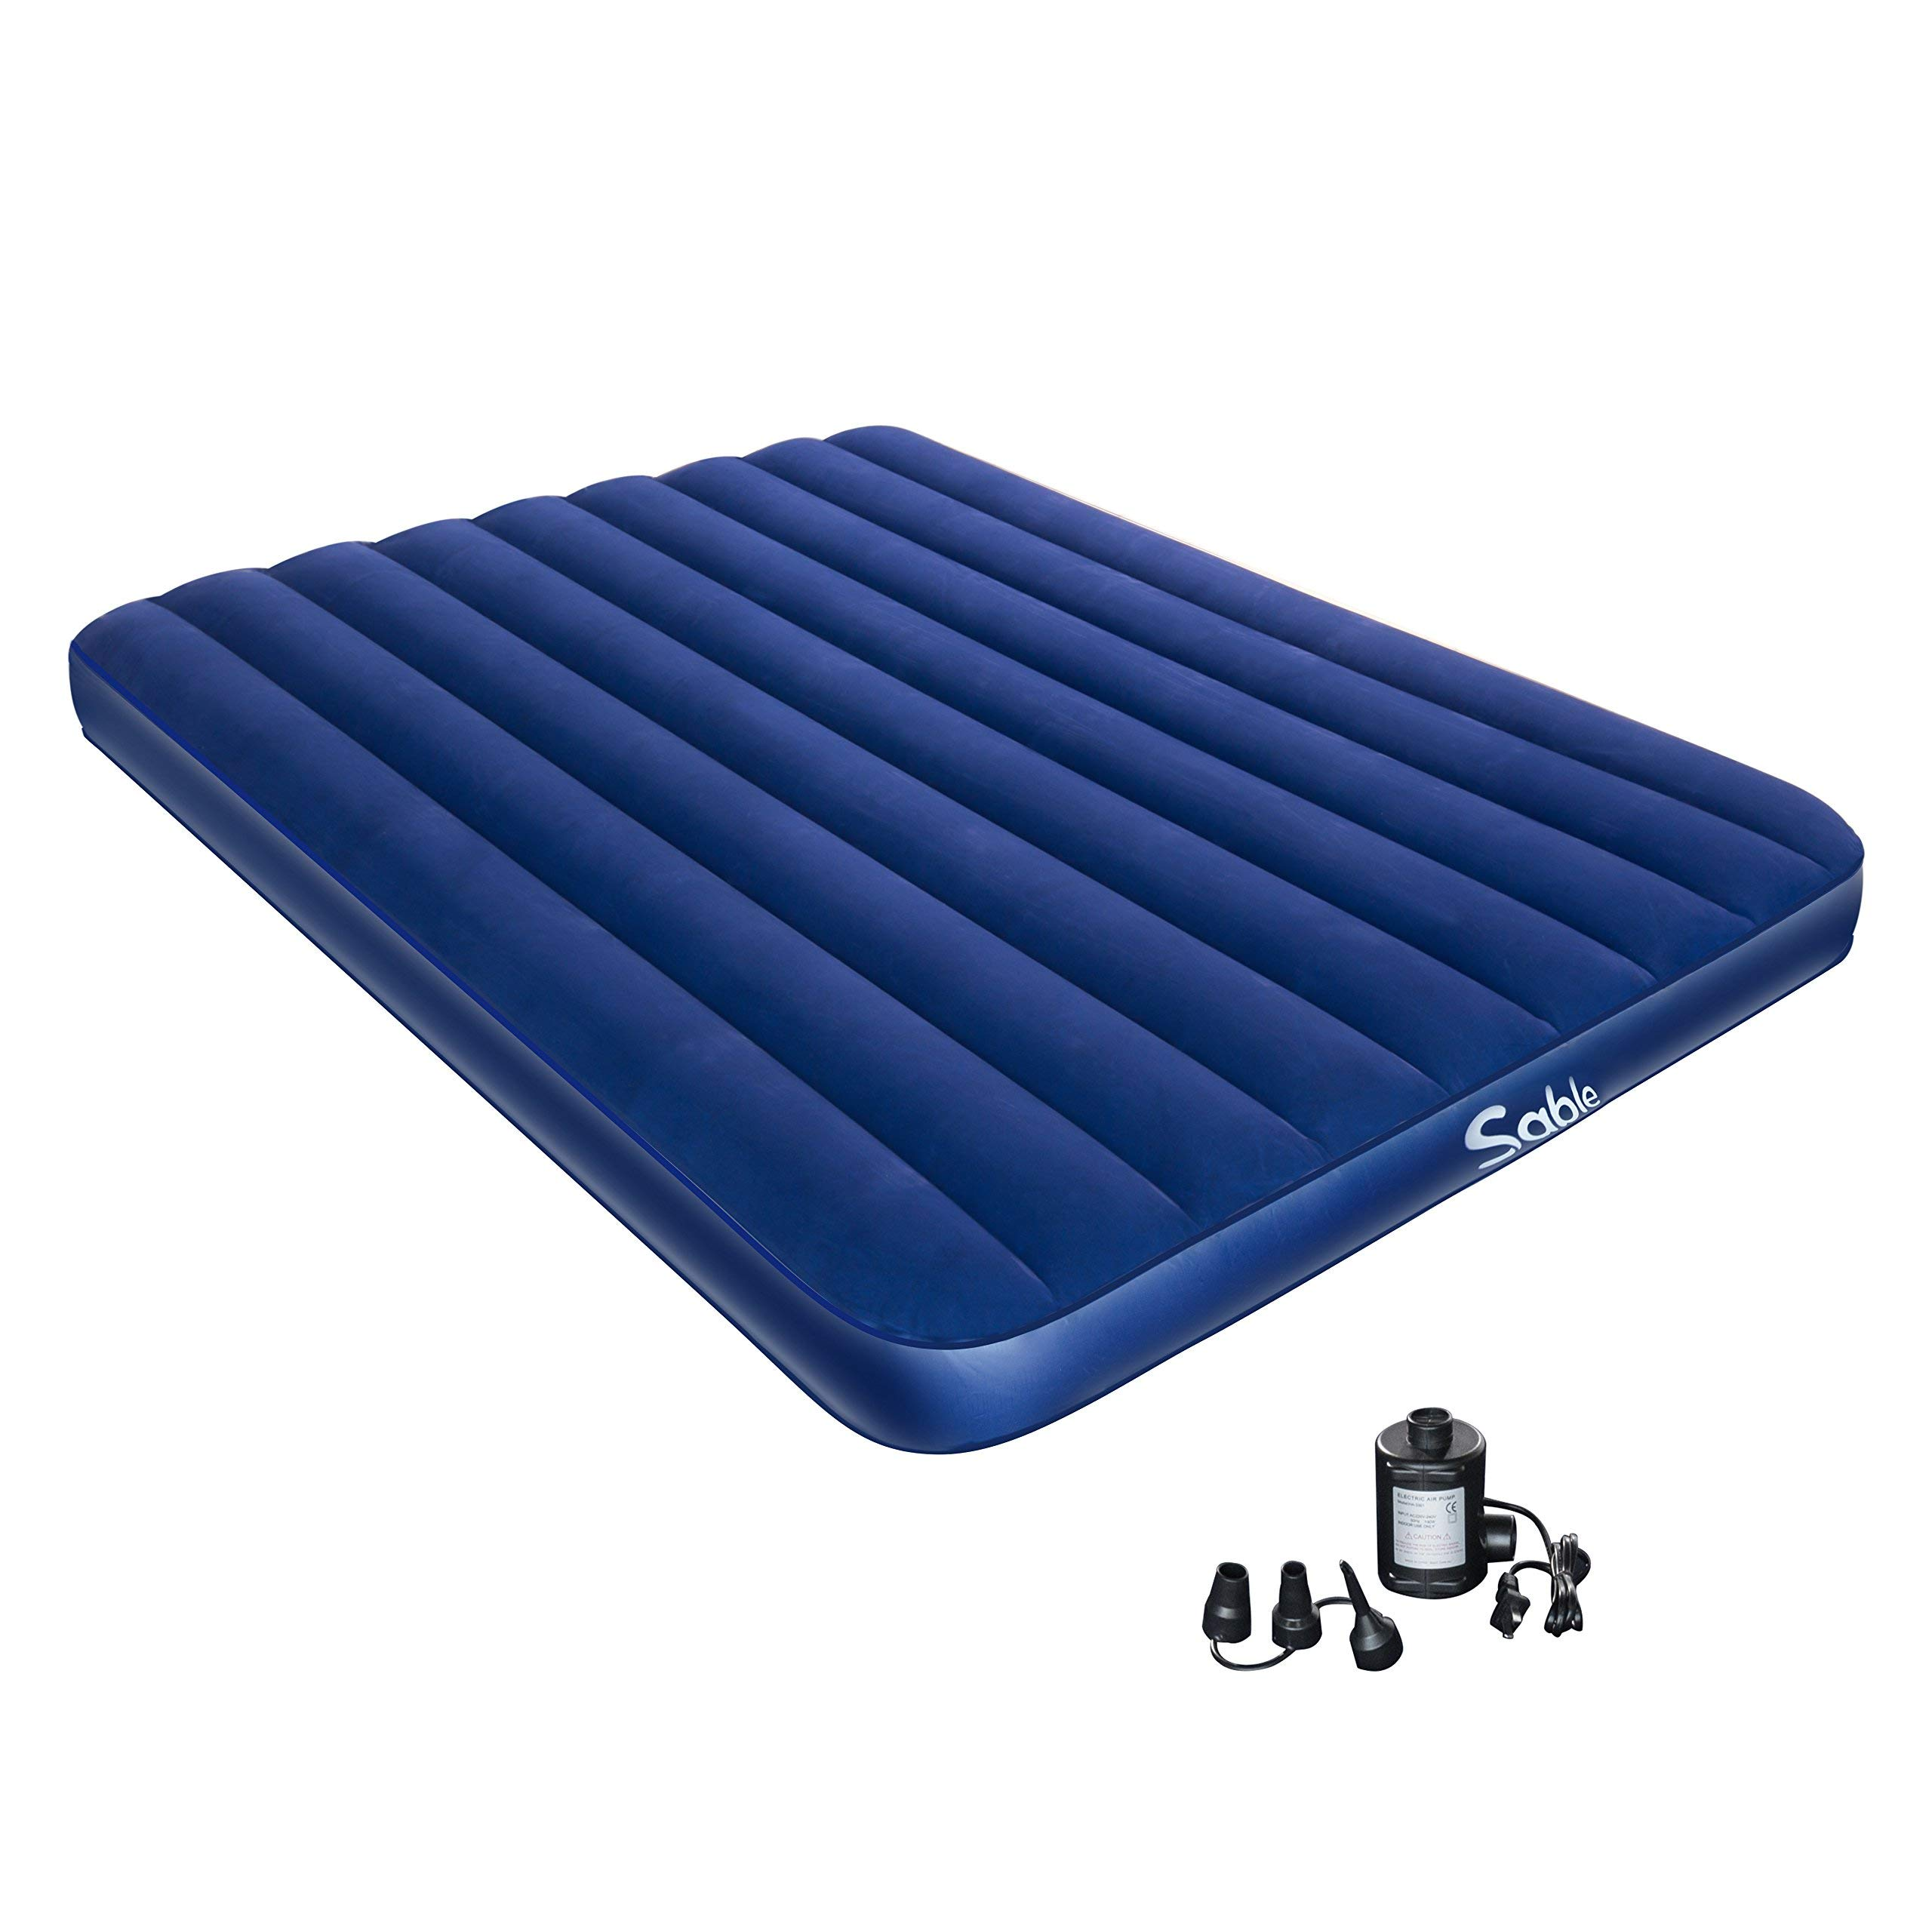 Sable Camping Air Mattress with Electric Air Pump, Inflatable Air Bed Blow up Bed for Car Tent Camping Hiking Backpacking - Height 8'', Queen Size (Certified Refurbished)